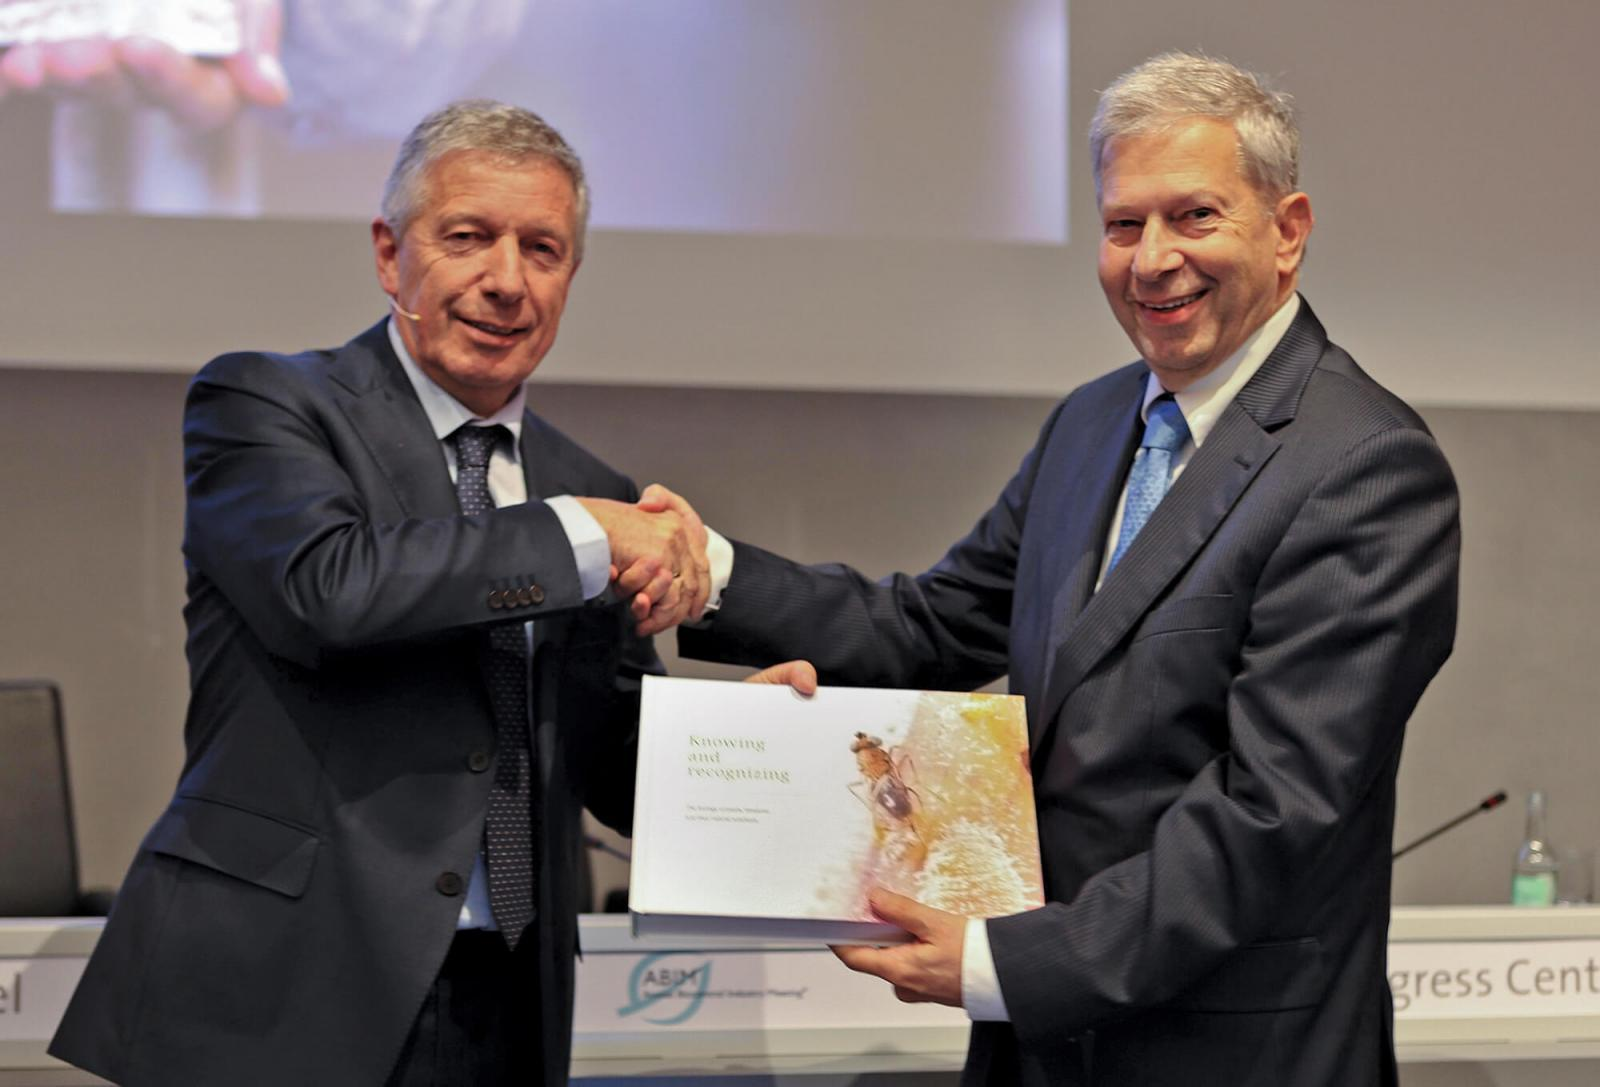 Kopperts Managing Director Paul Koppert presents  Willem Ravensberg, President of IBMA, with renewed  edition of Knowing and Recognizing.